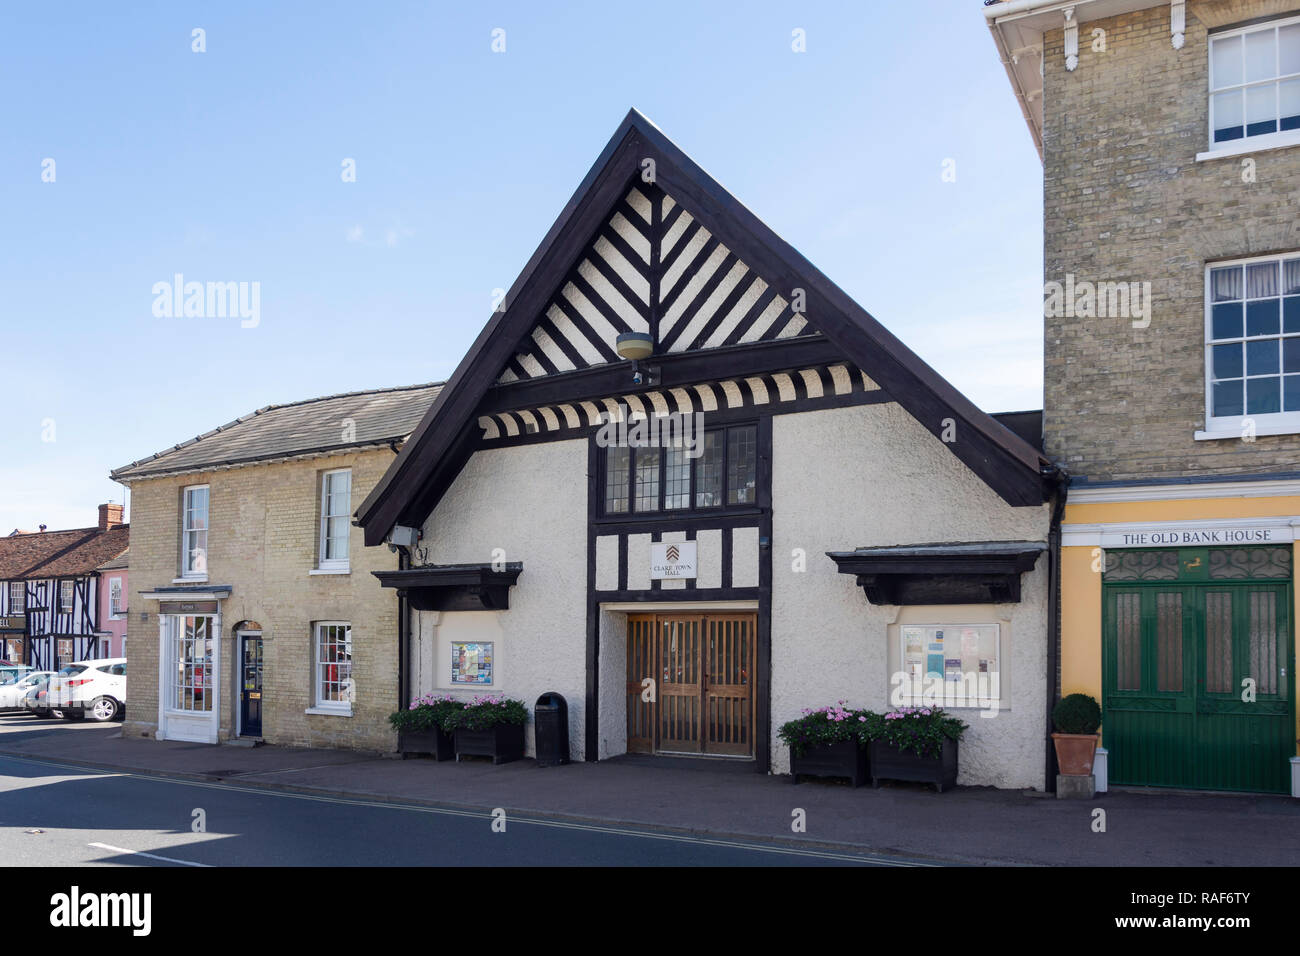 Clare Town Hall, Market Hill, Clare, Suffolk, England, United Kingdom - Stock Image